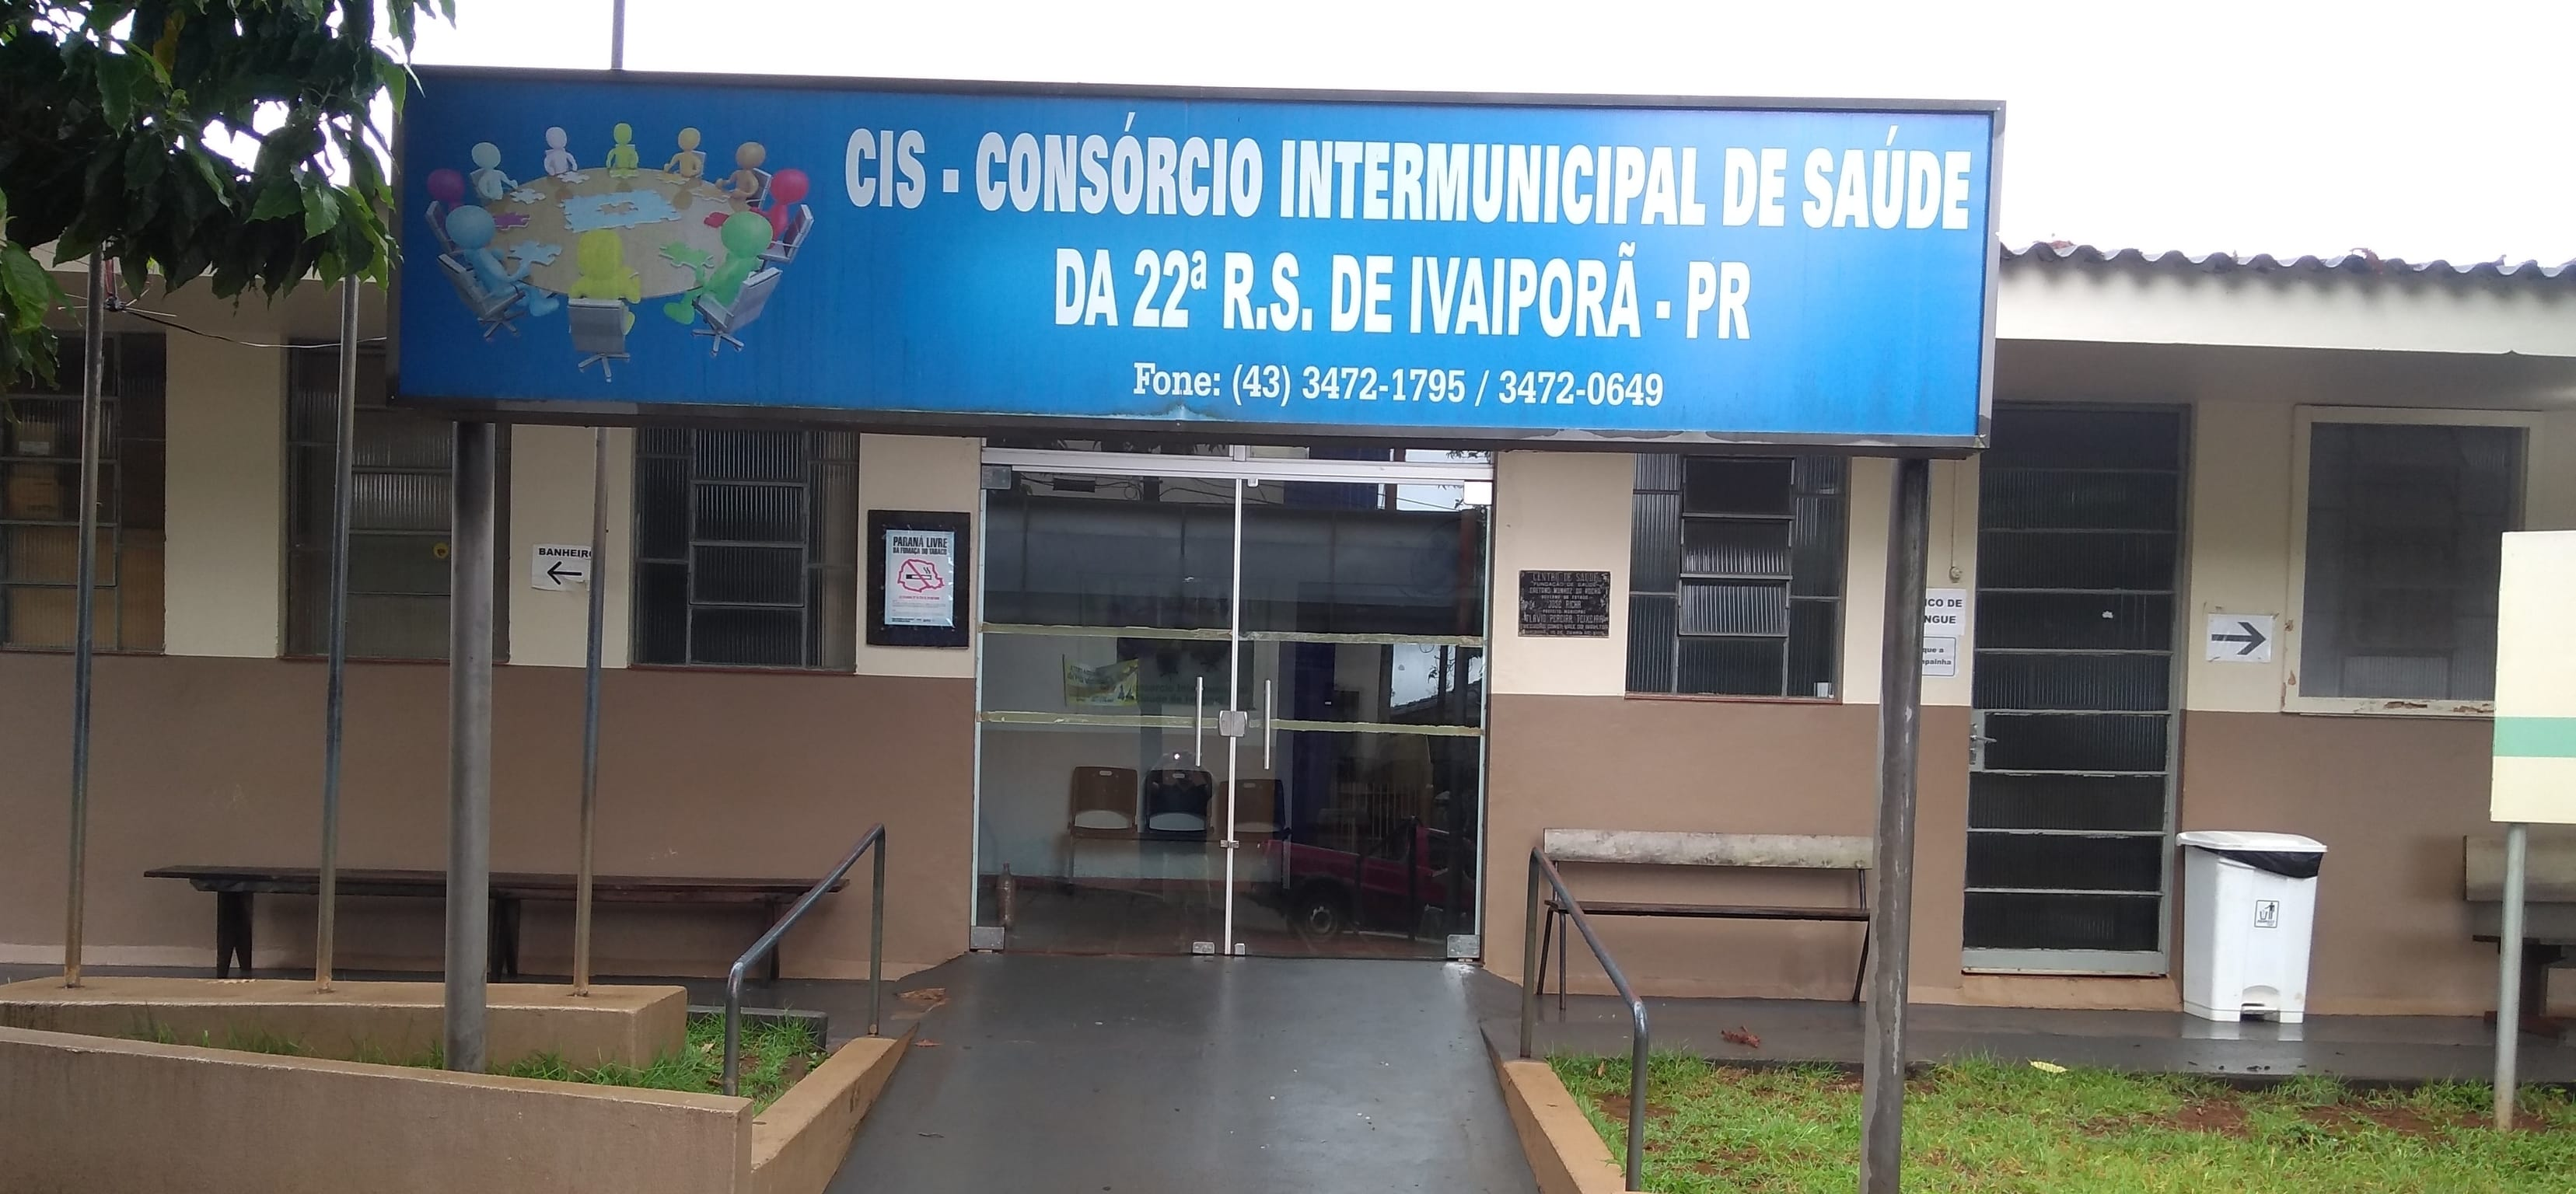 Foto da fachada do CIS